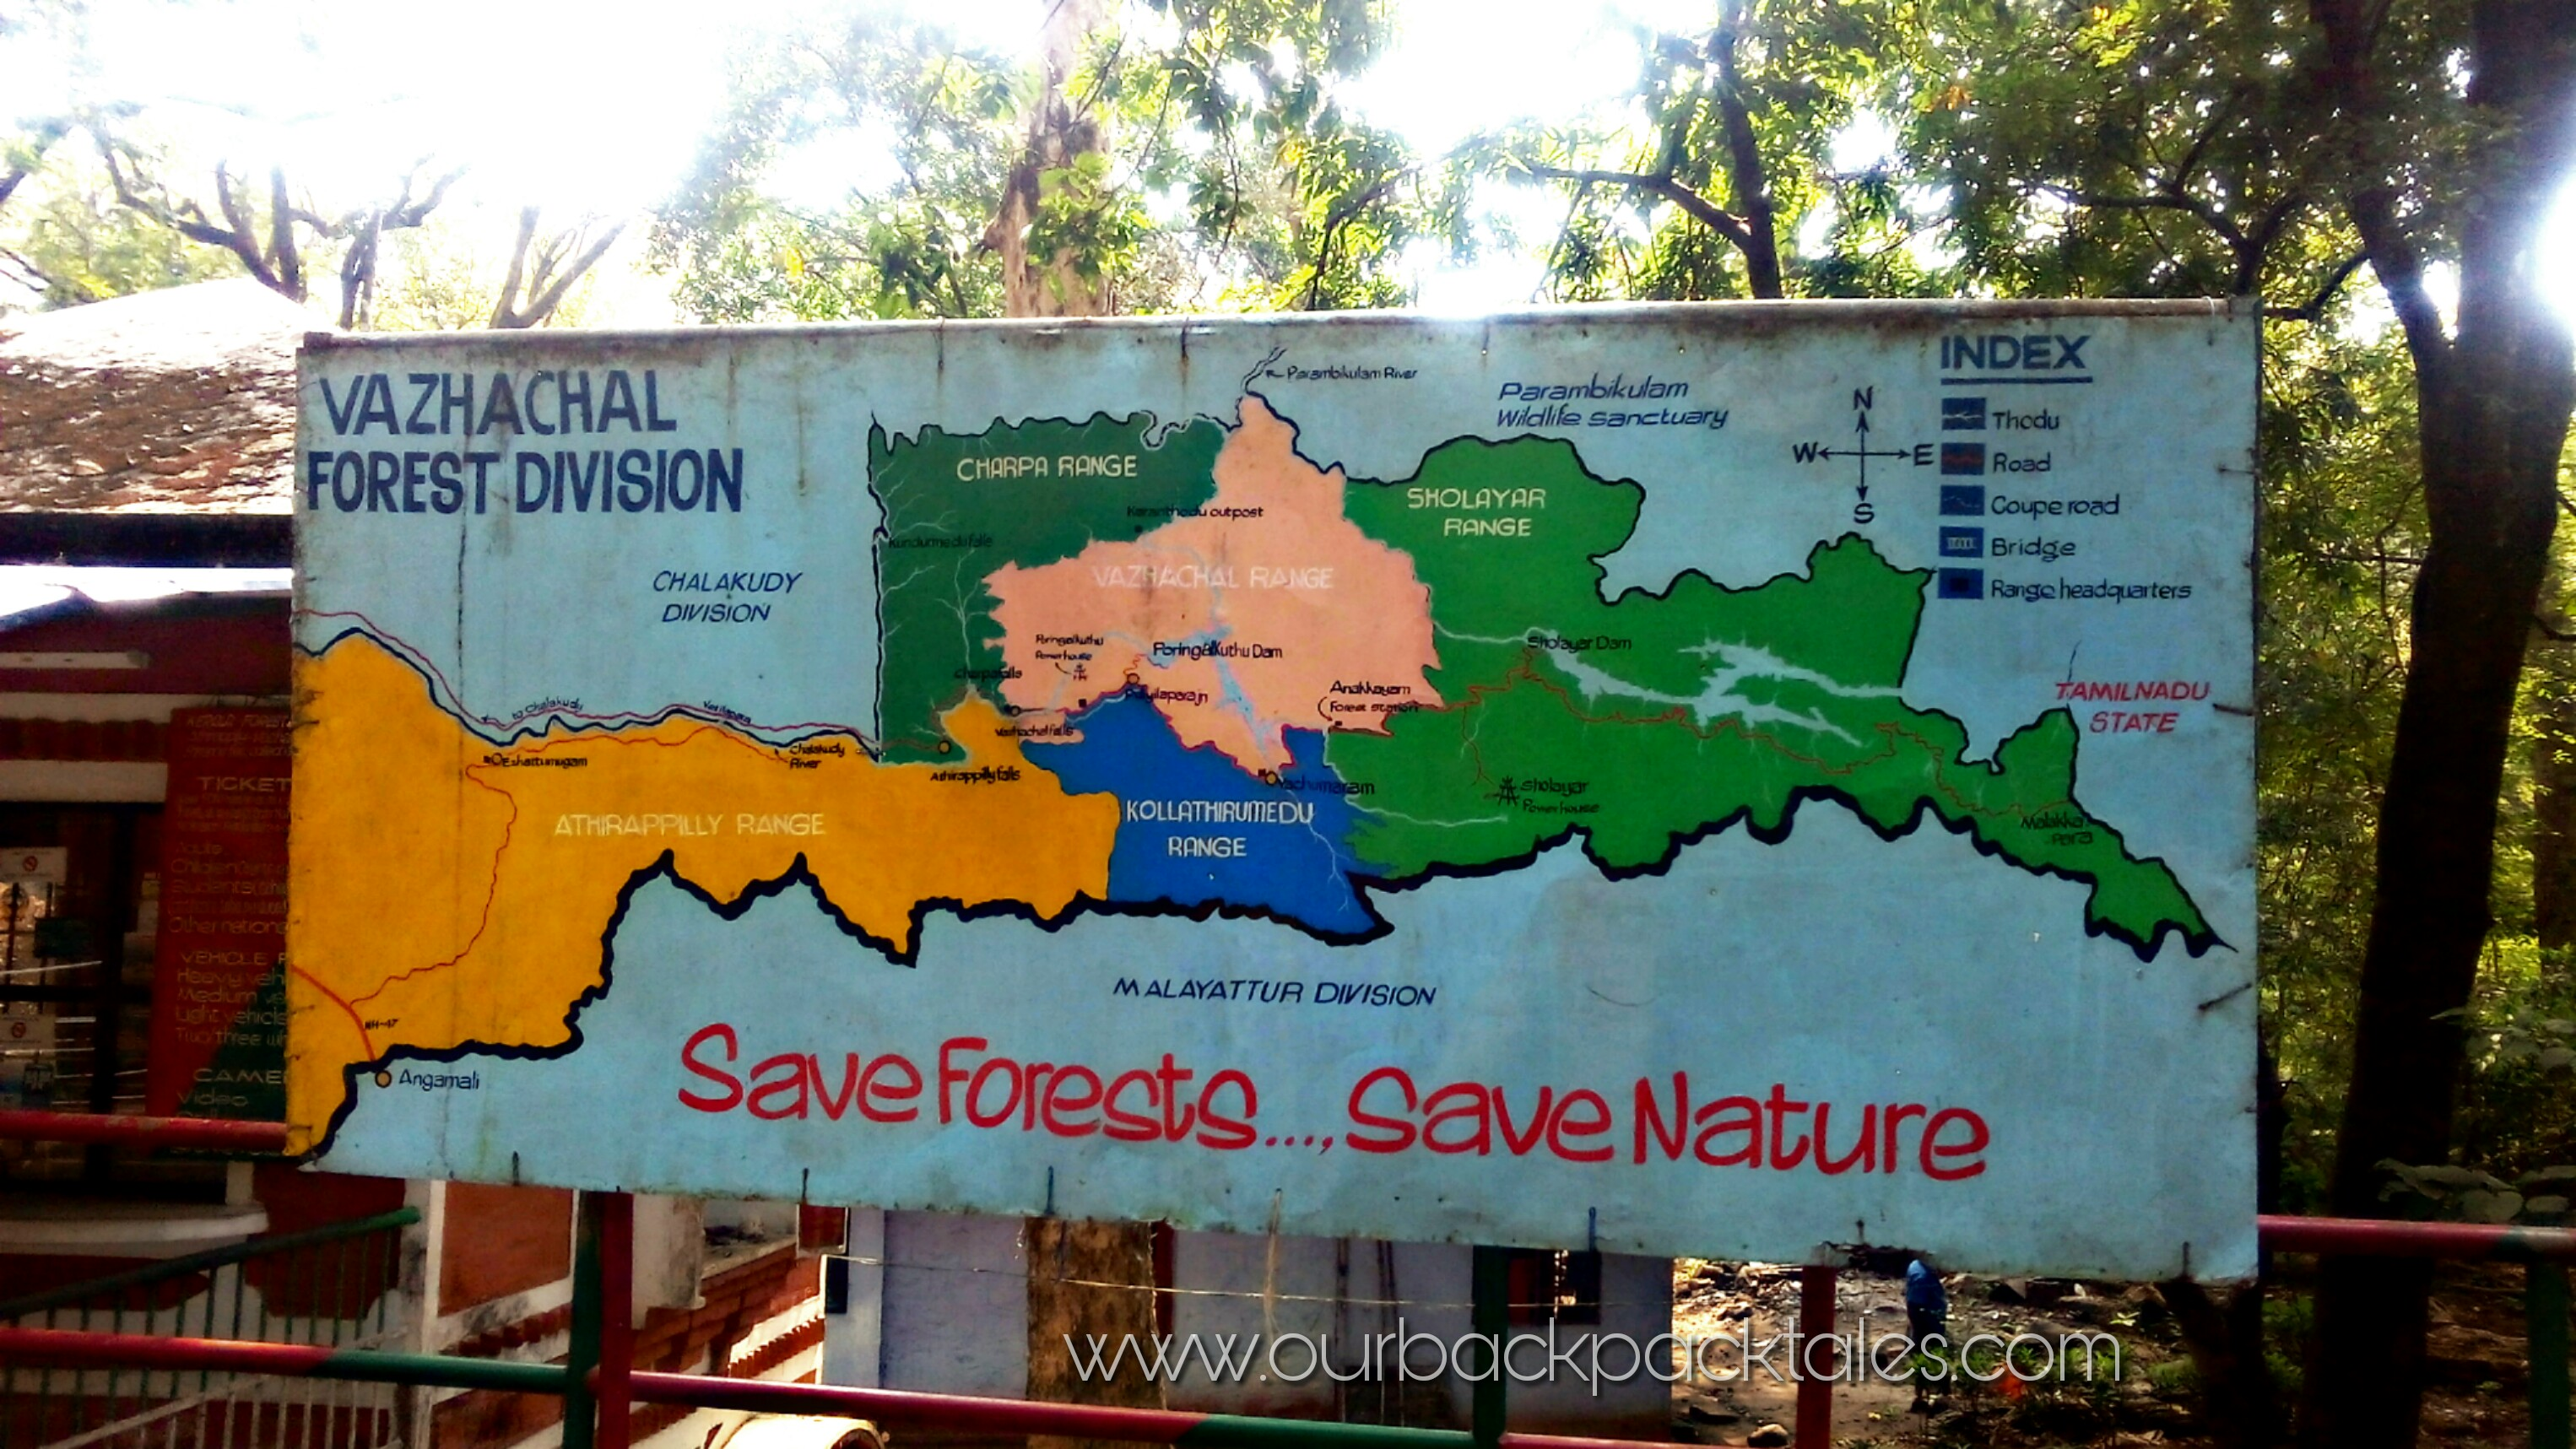 Top places to visit near athirapally waterfalls our backpack tales 5